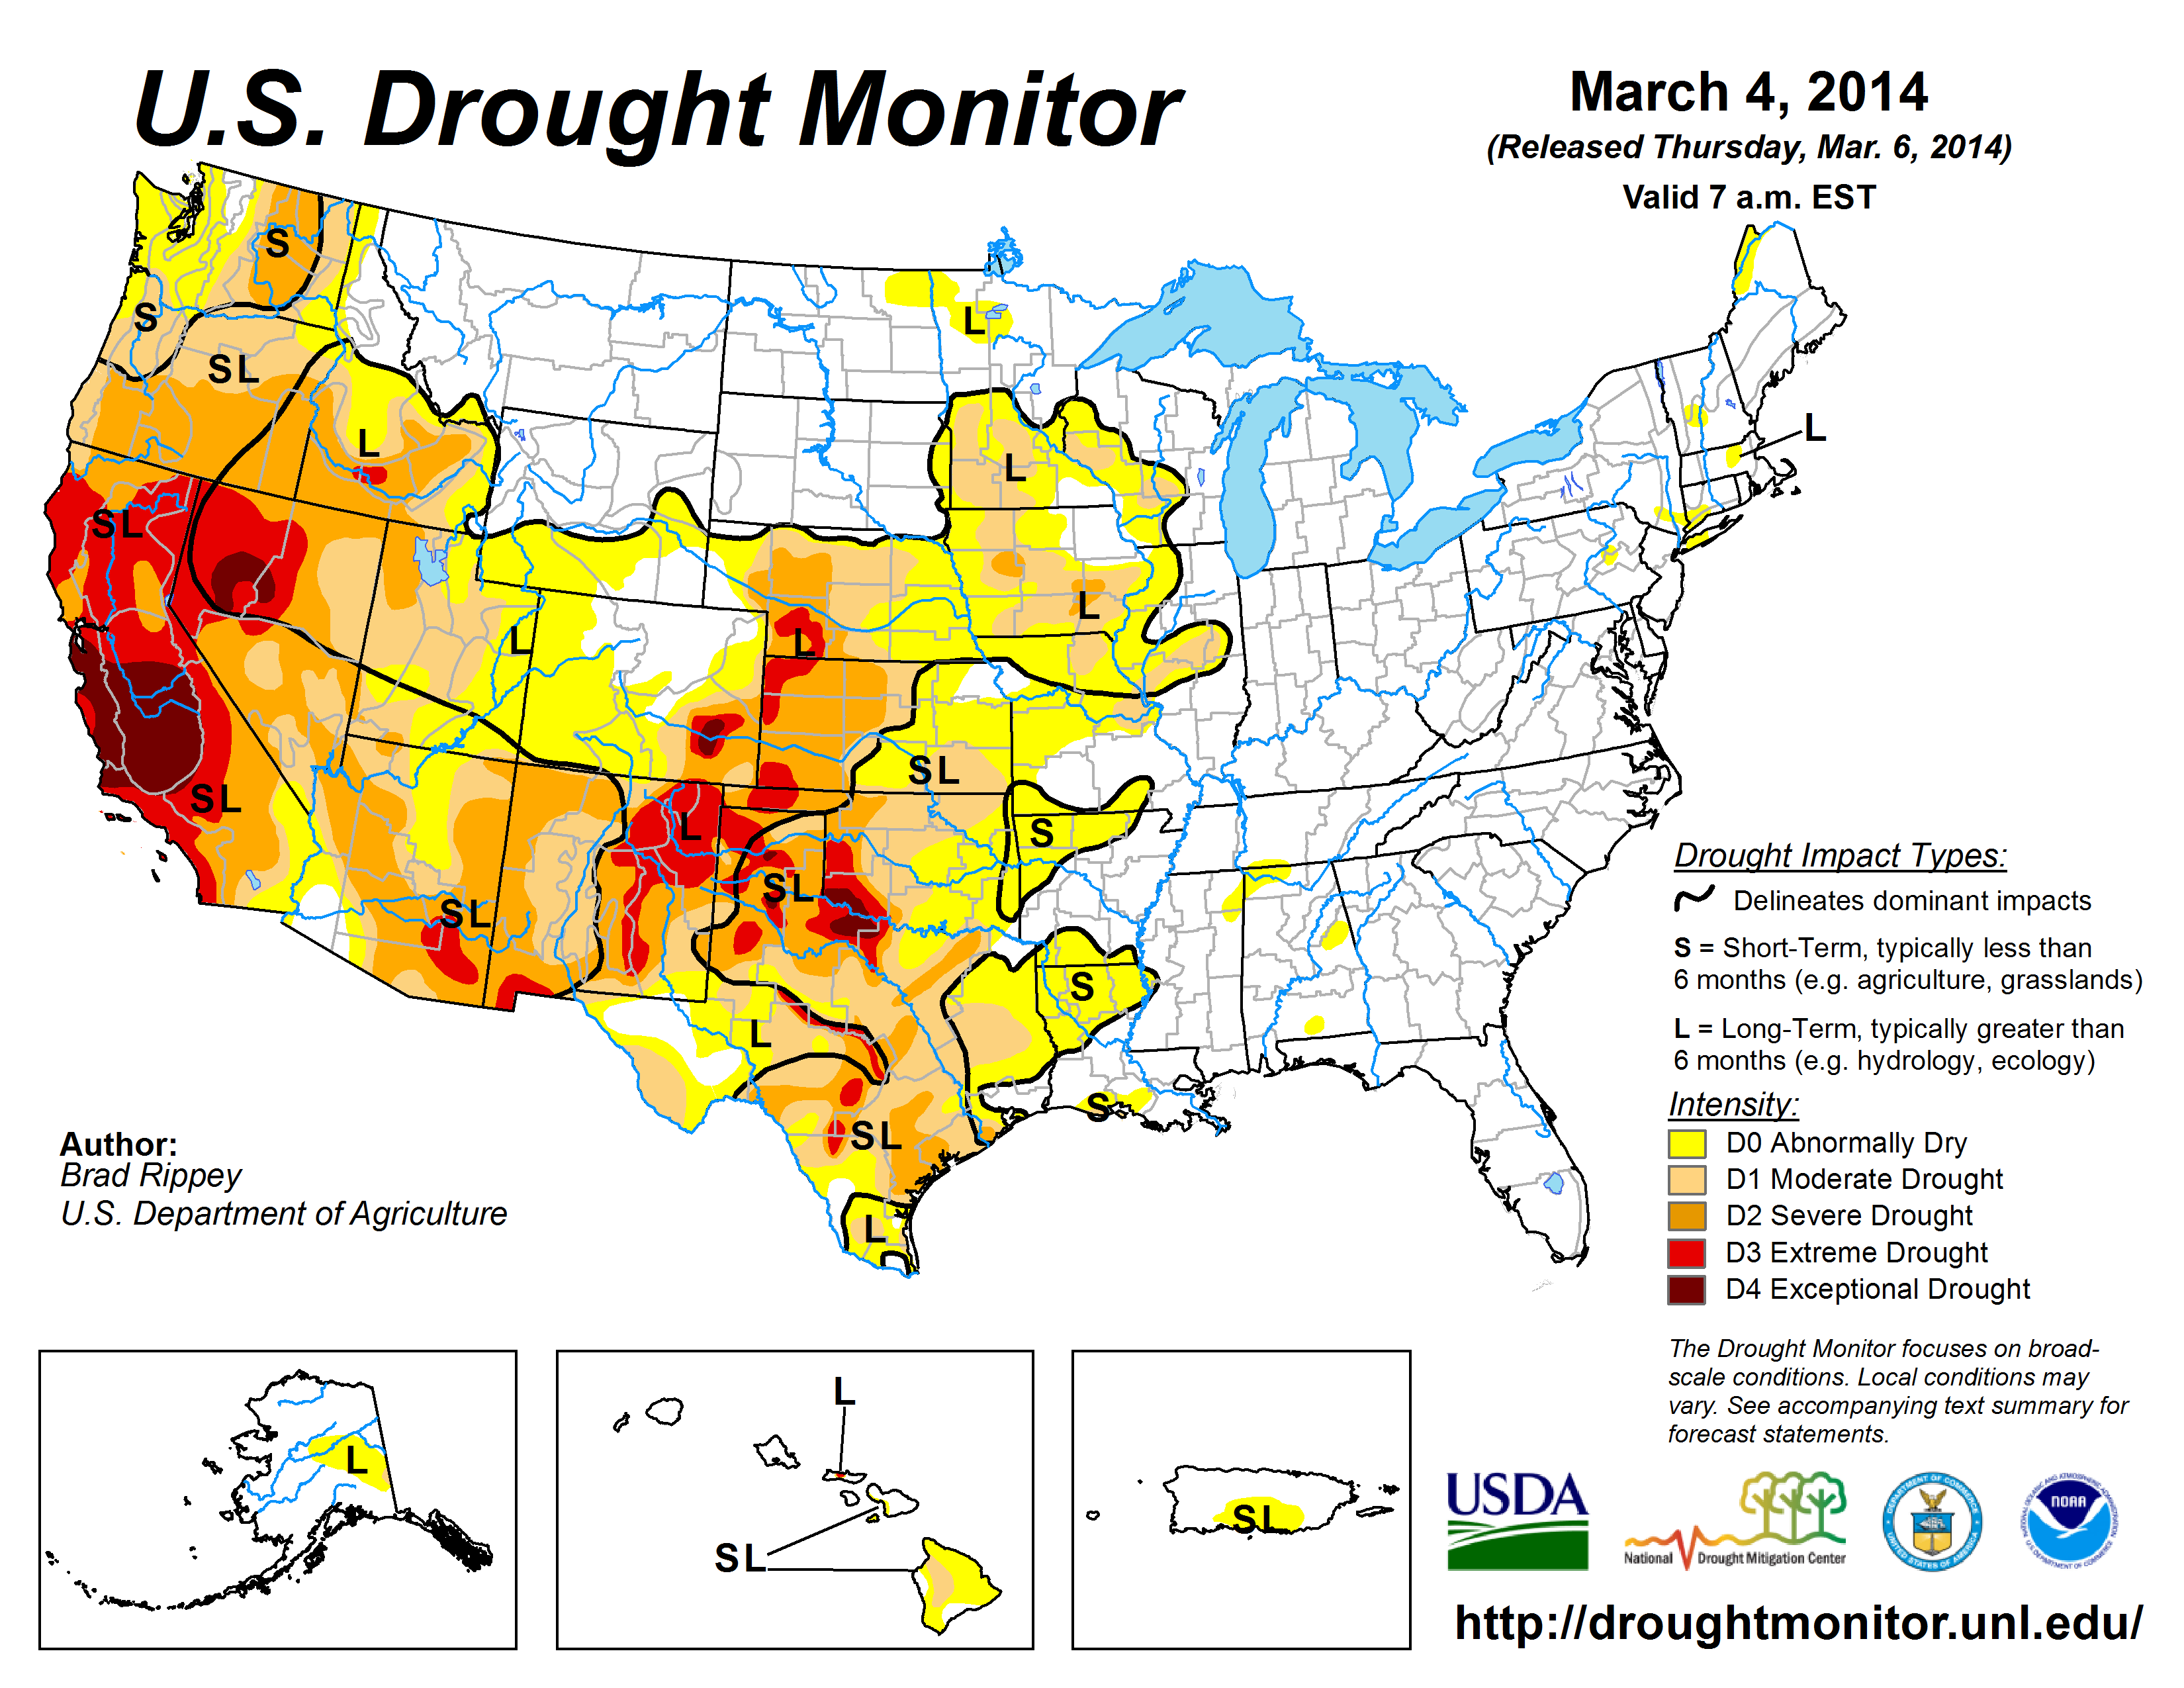 The U.S. Drought Monitor drought map valid March 4, 2014